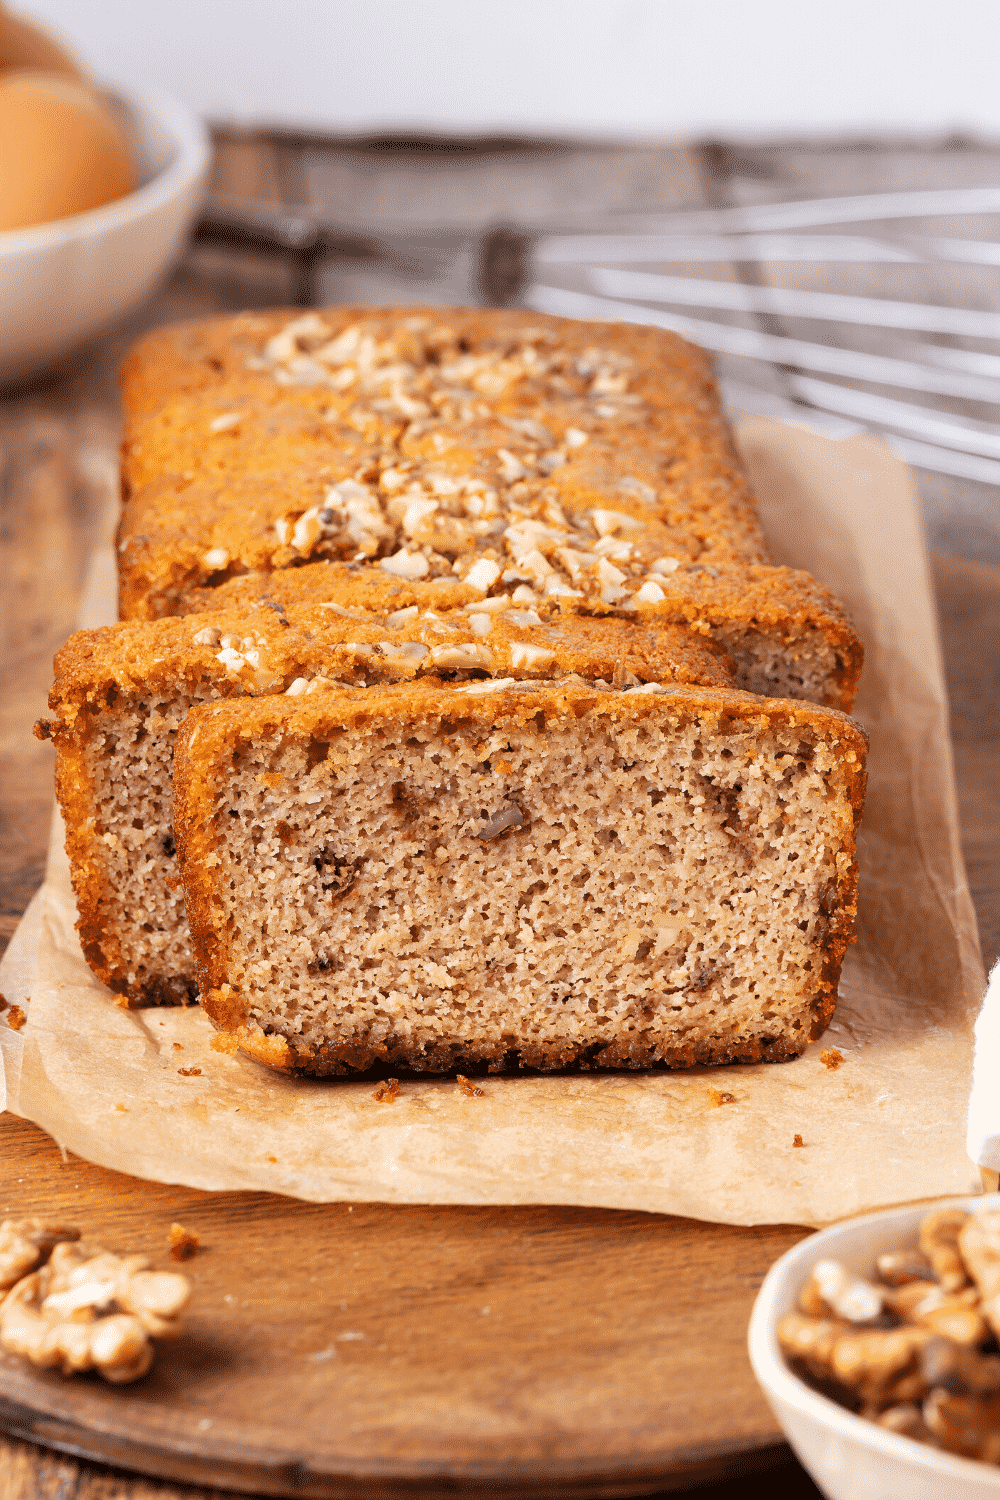 A loaf of banana bread on a piece of parchment paper on a wooden cutting board. The front of the loaf is cut into slices.